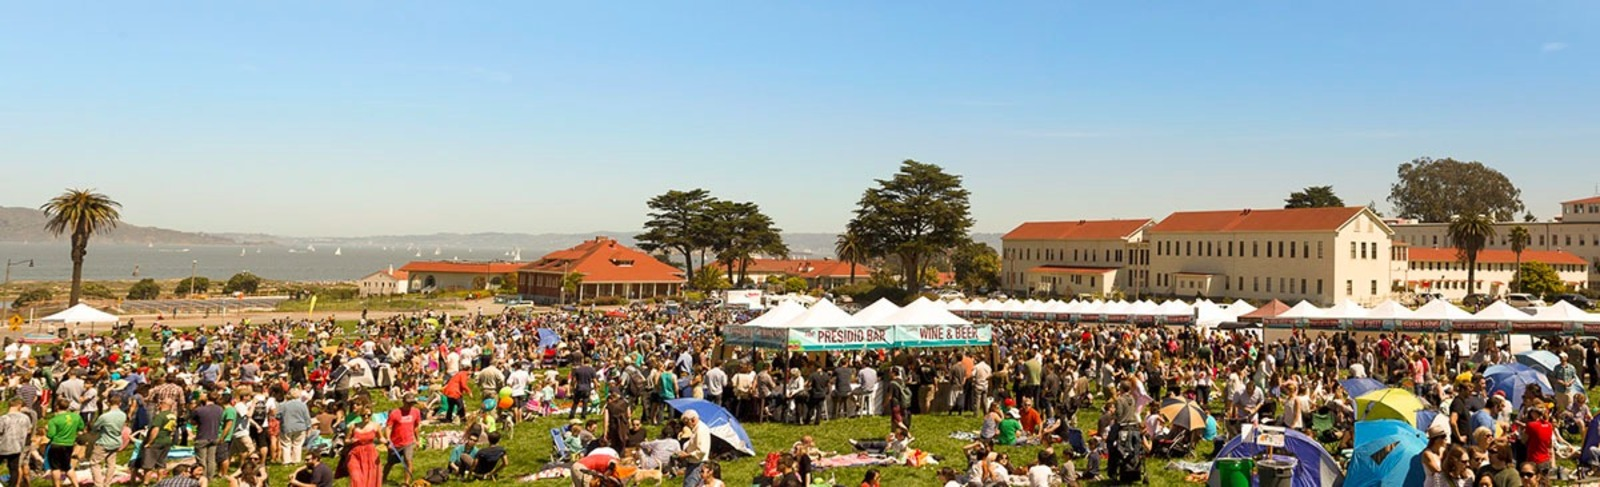 Off The Grid - Presidio Picnic